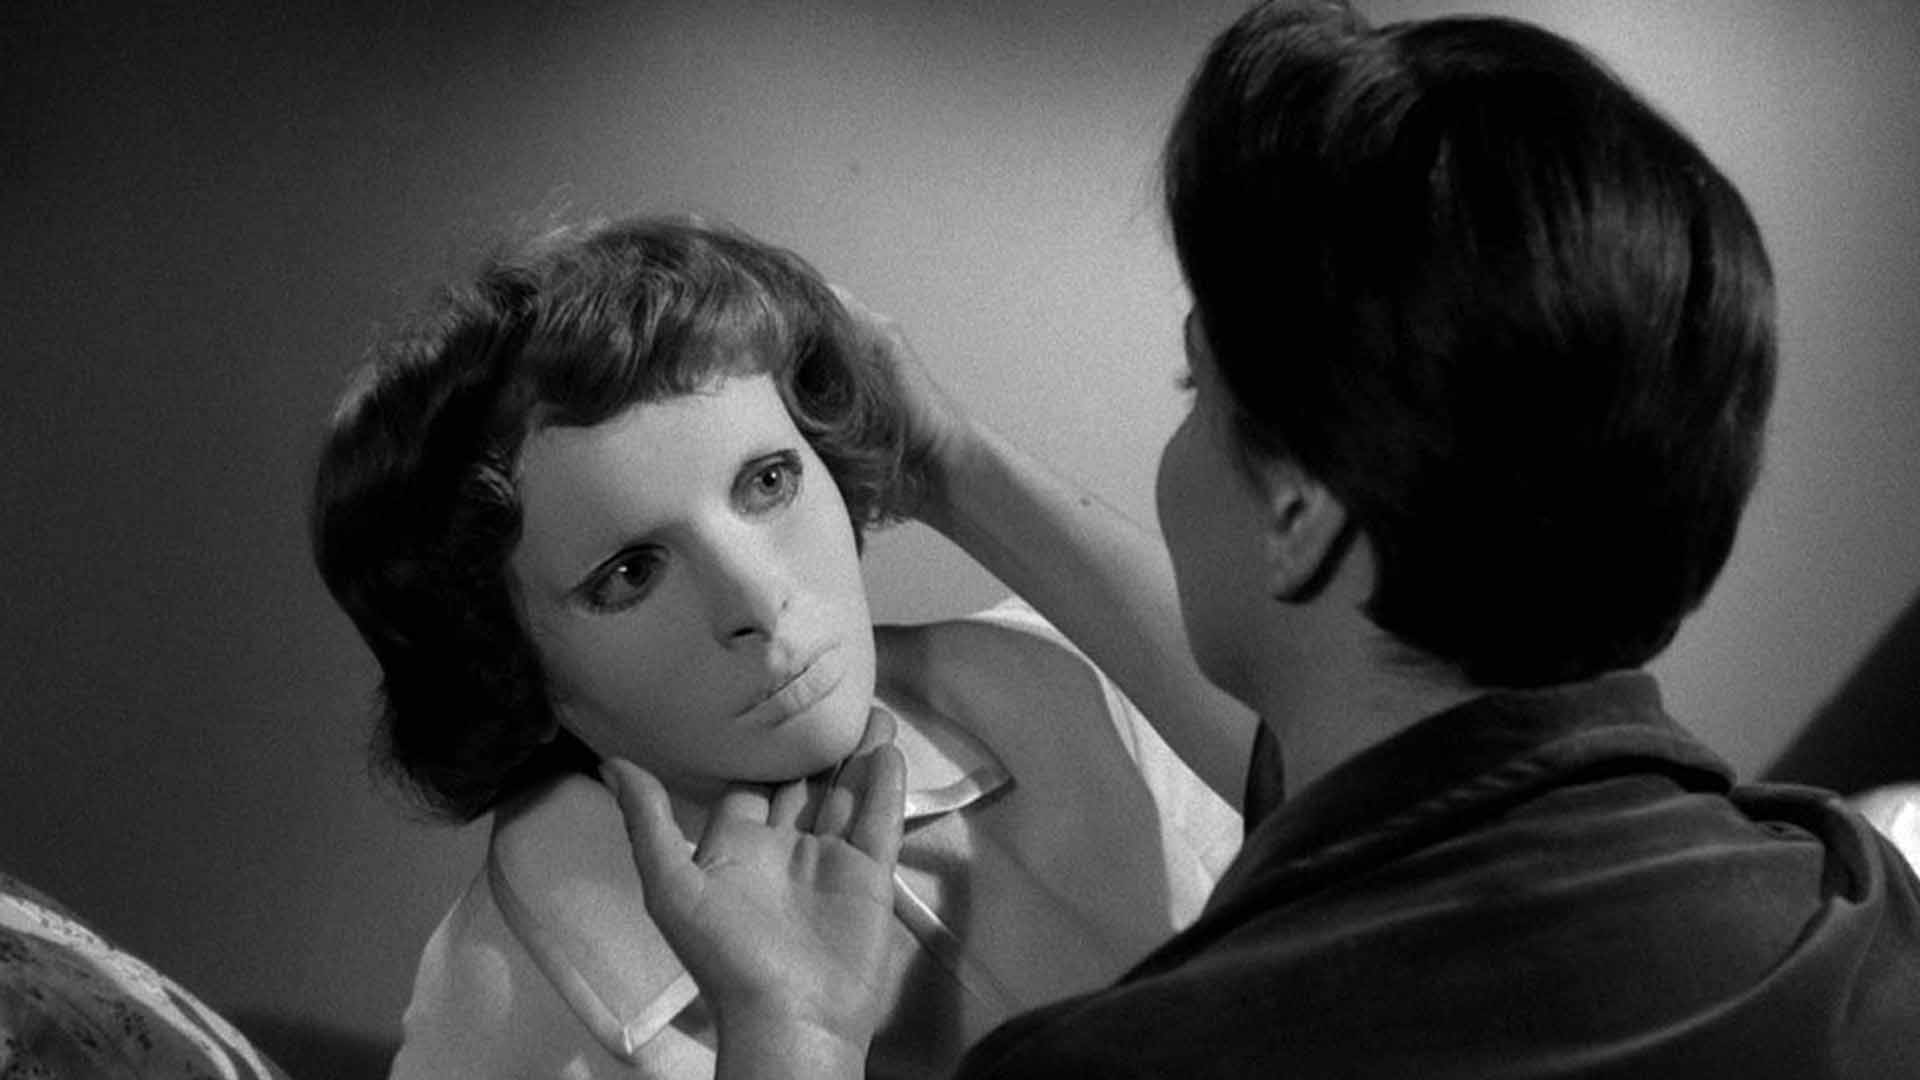 Edith Scooby with a special mask in the movie Eyes Without a Face